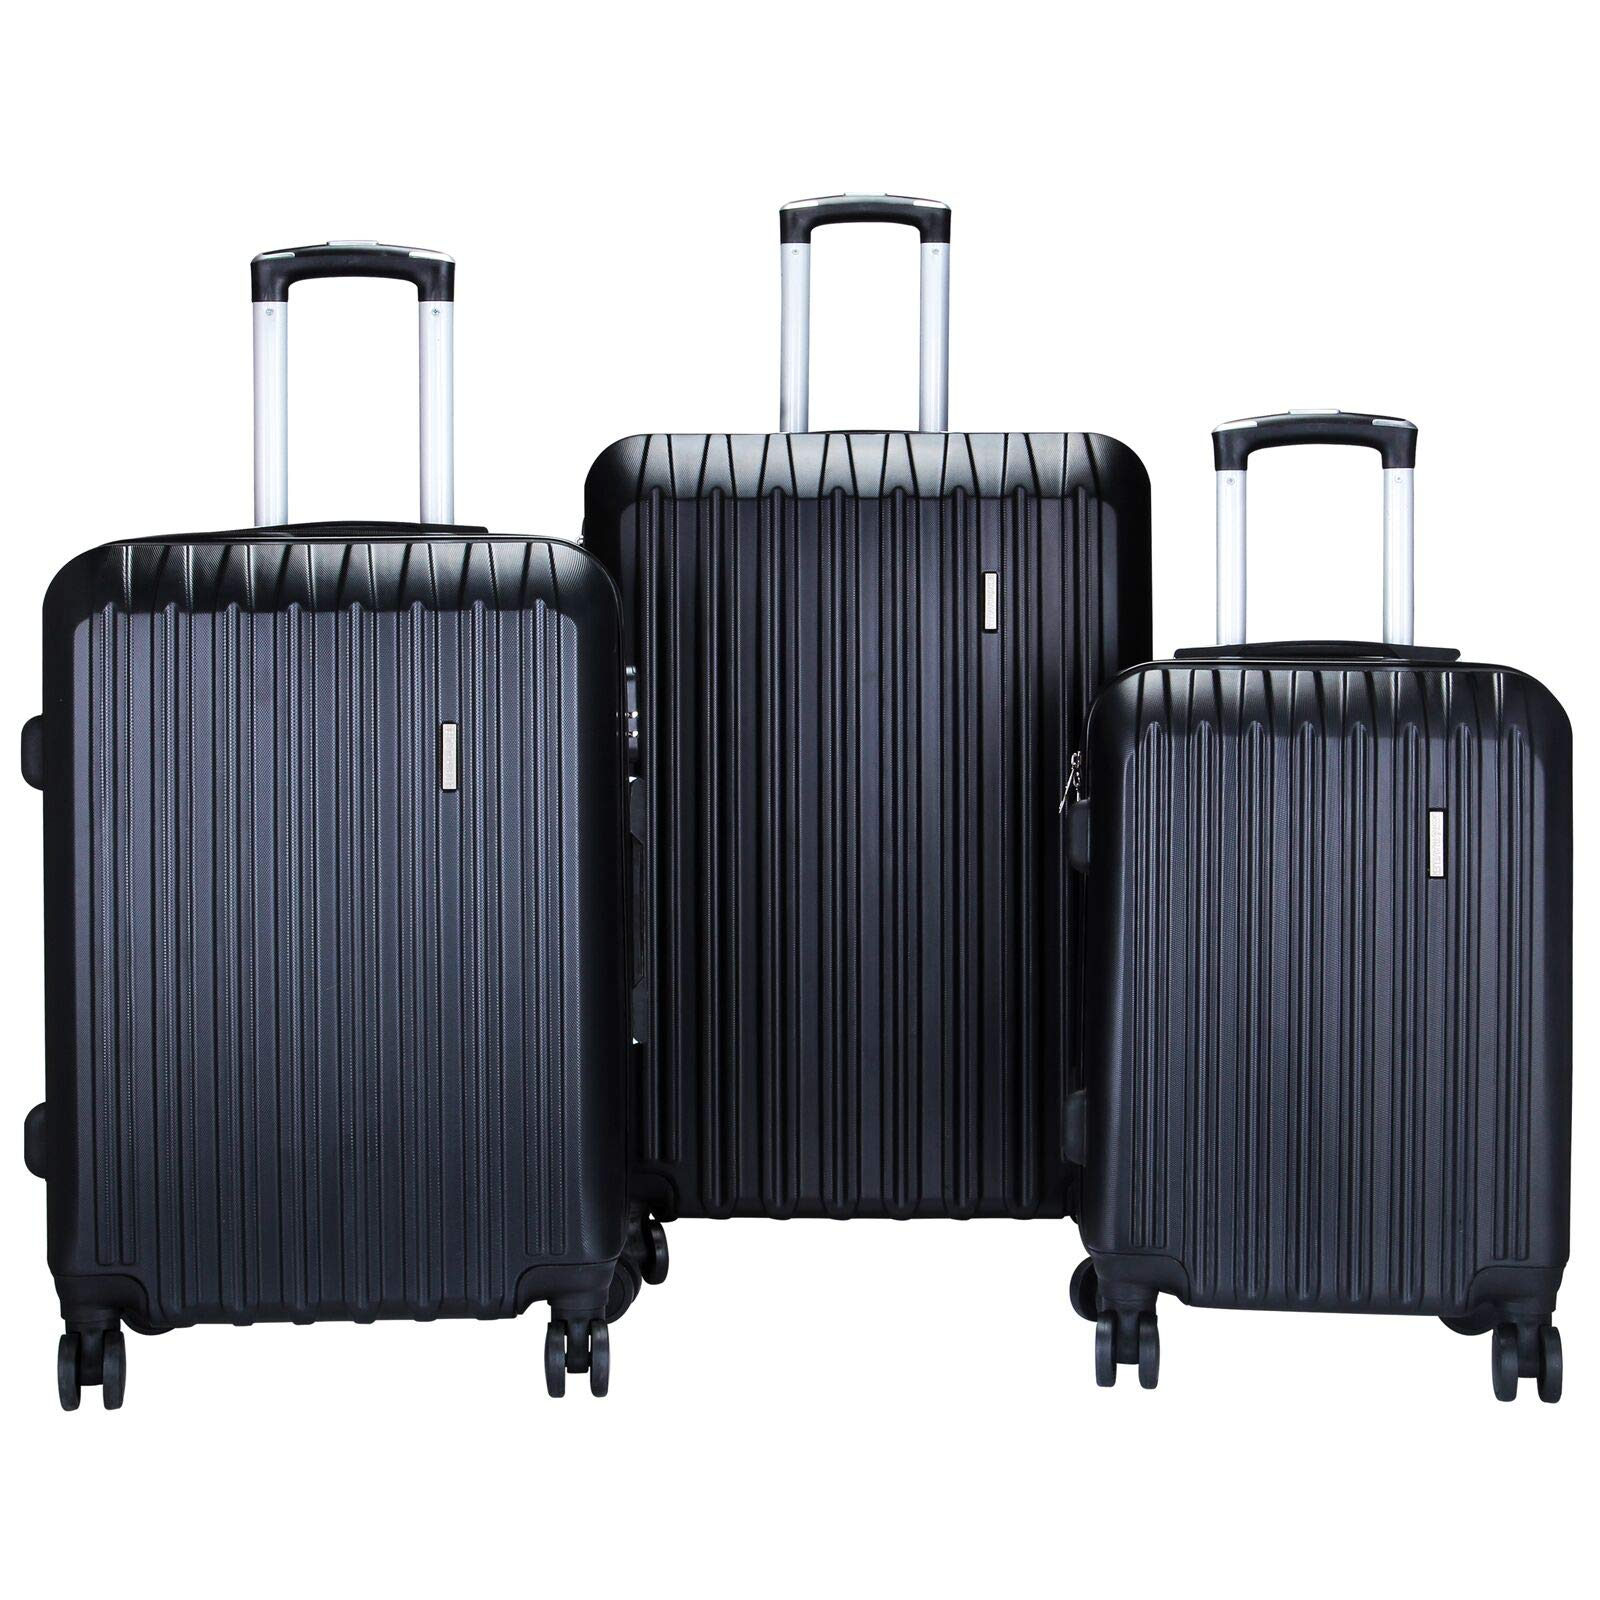 Murtisol 3 Pieces ABS Luggage Sets Hardside Spinner Lightweight Durable Spinner Suitcase 20'' 24'' 28'', 3PCS Black